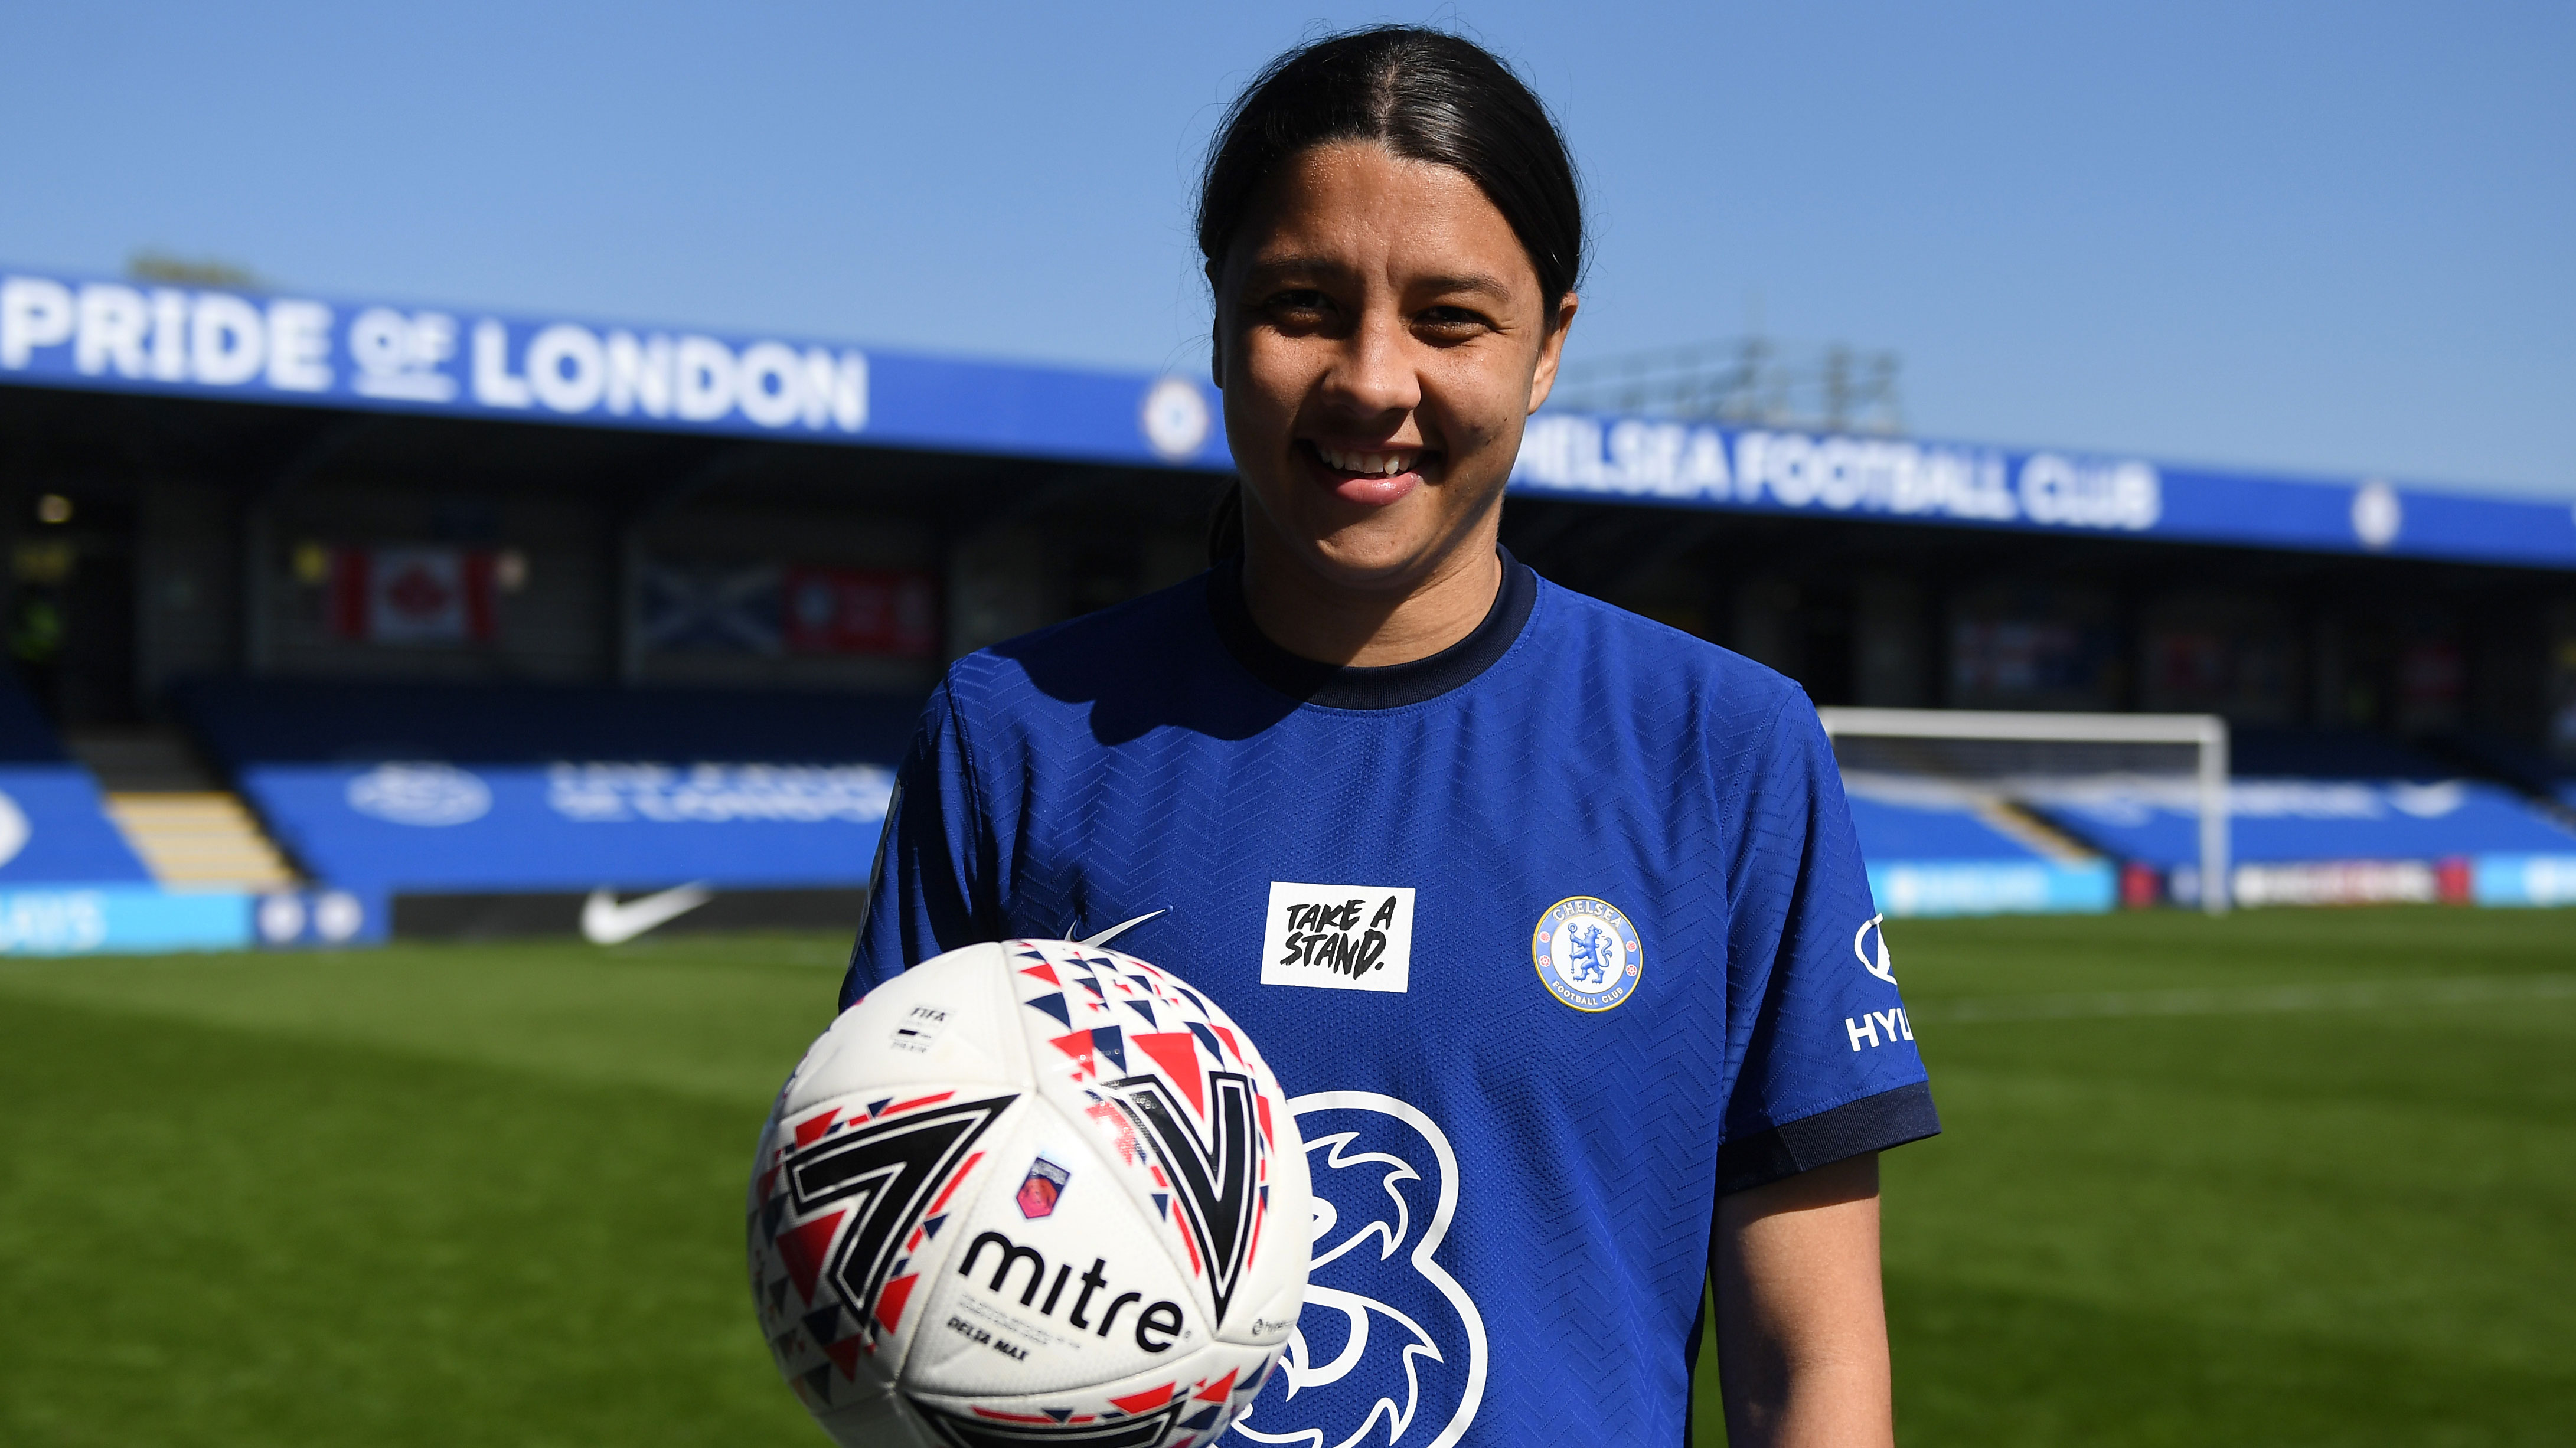 Sam Kerr poses with the match ball after scoring a hat-trick against Birmingham City.